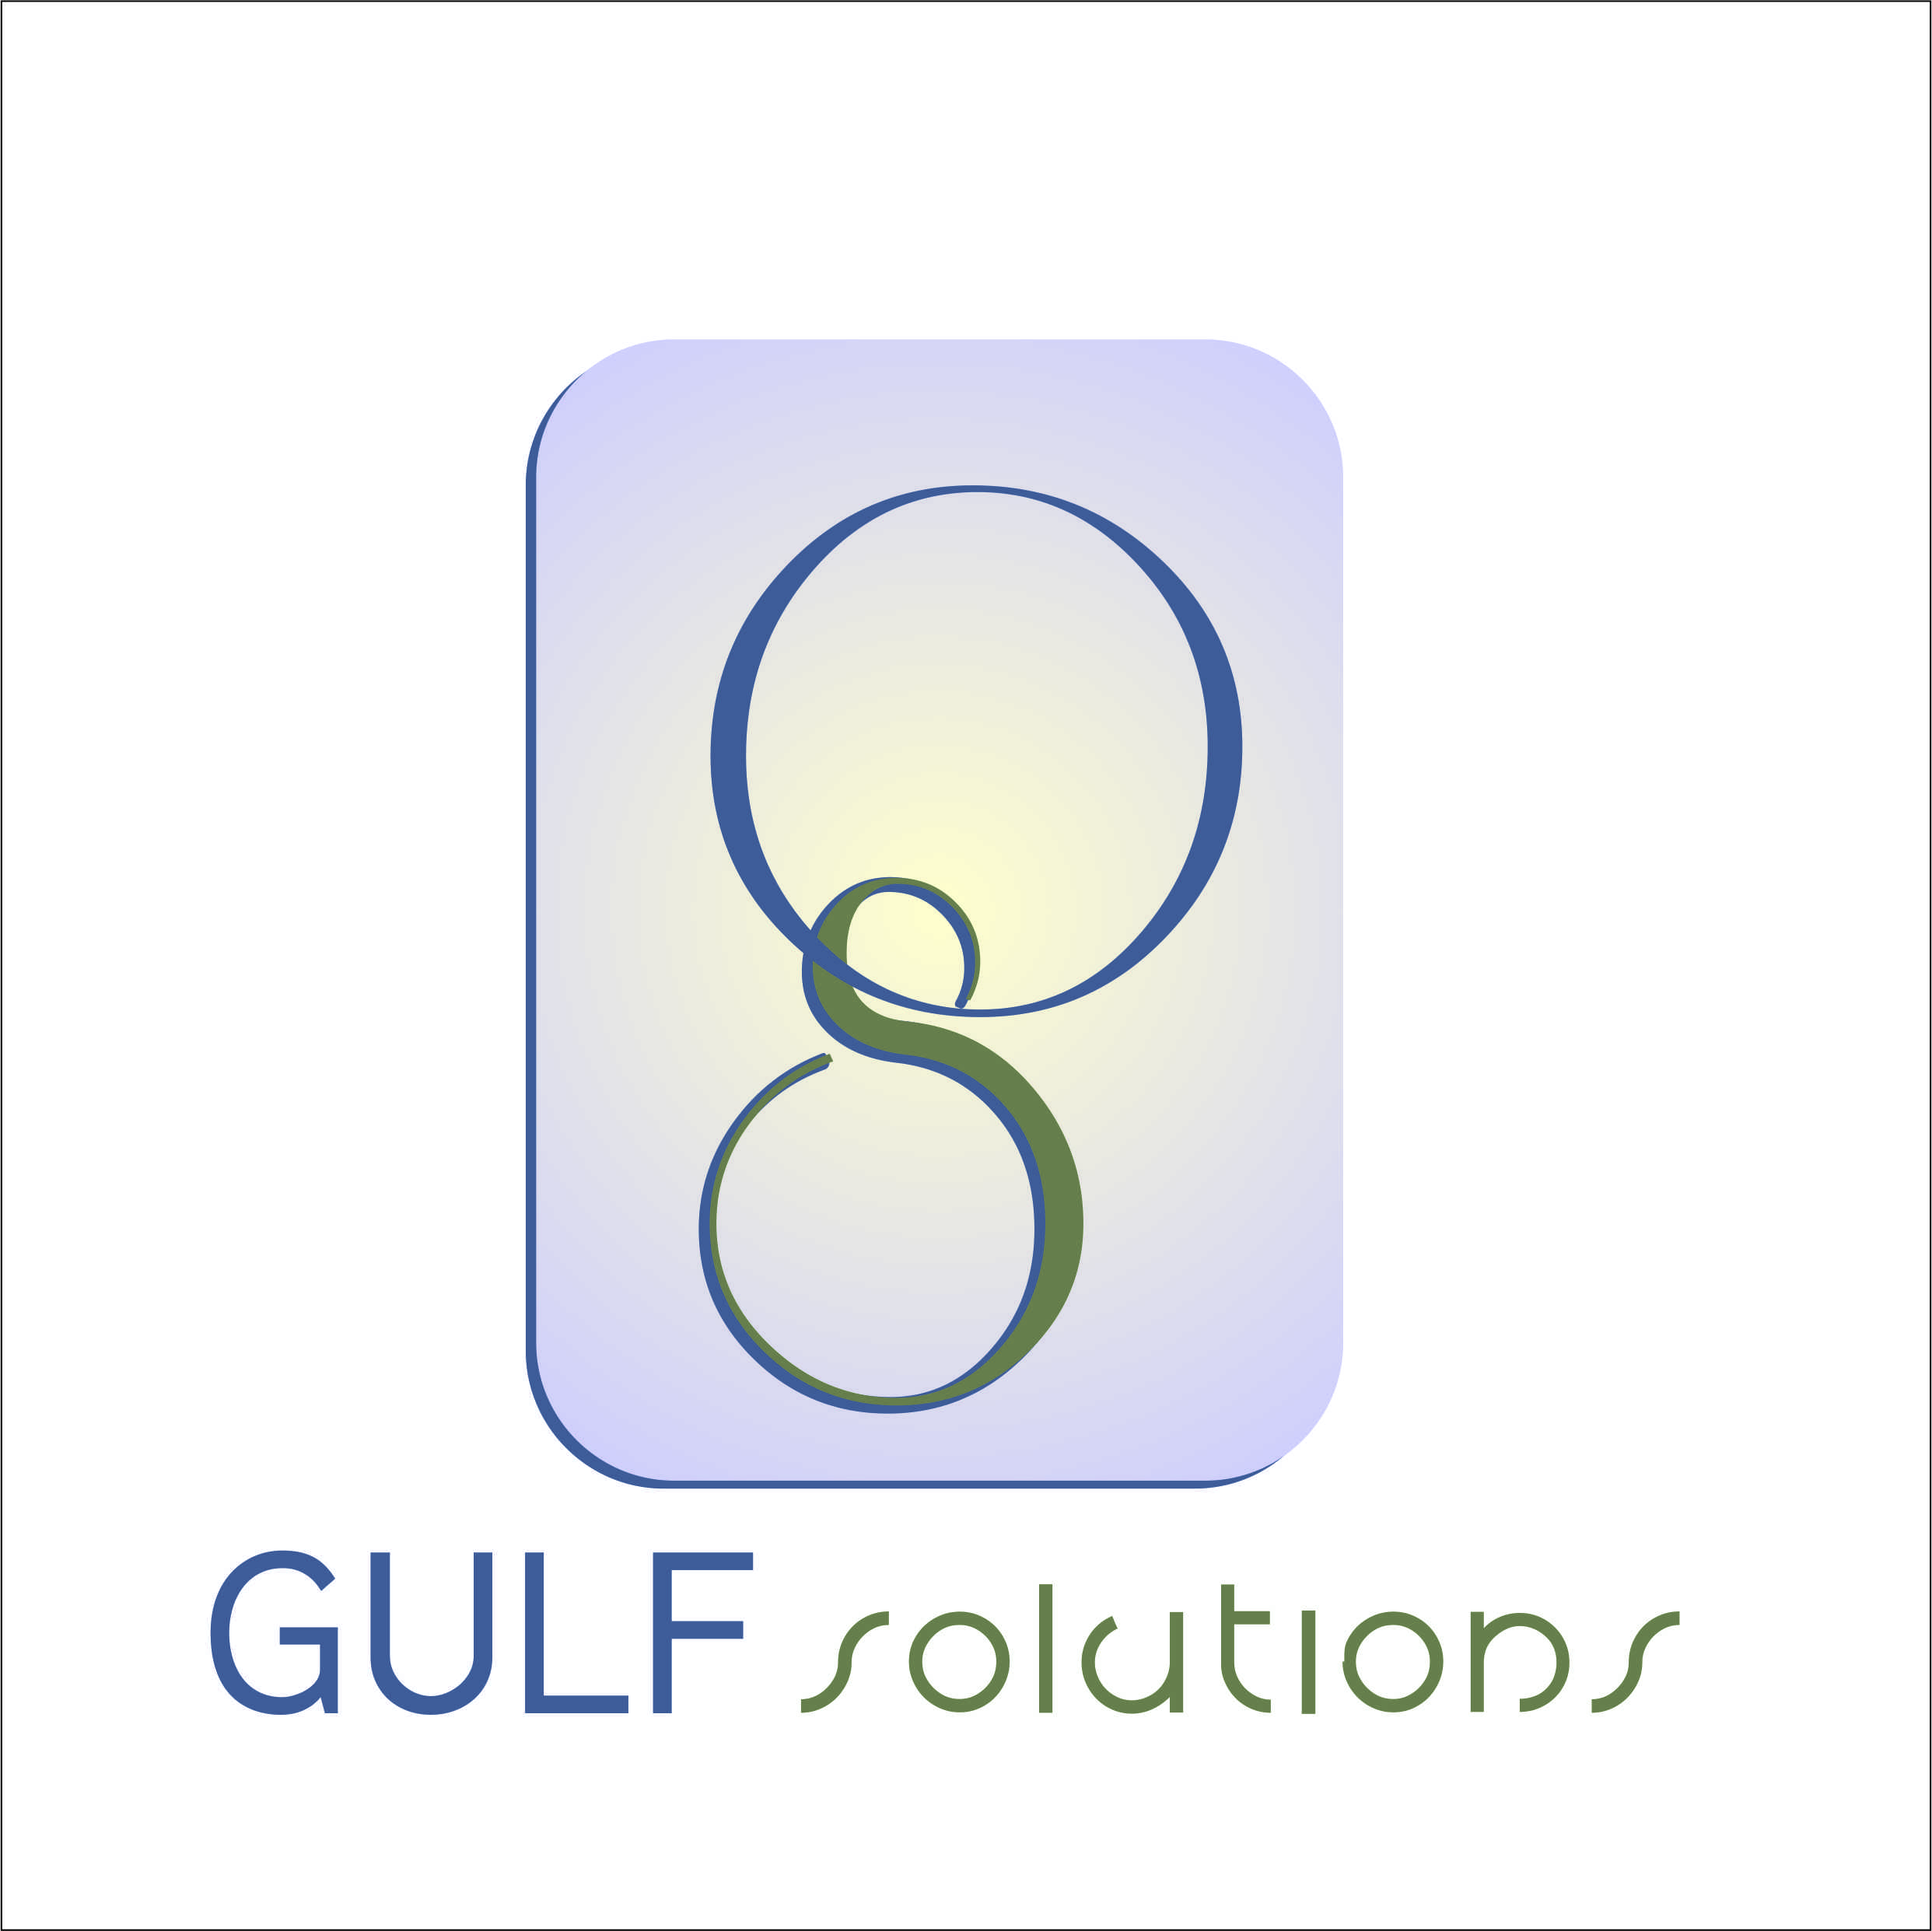 Logo Design by chandruu_rc - Entry No. 137 in the Logo Design Contest New Logo Design for Gulf solutions company.